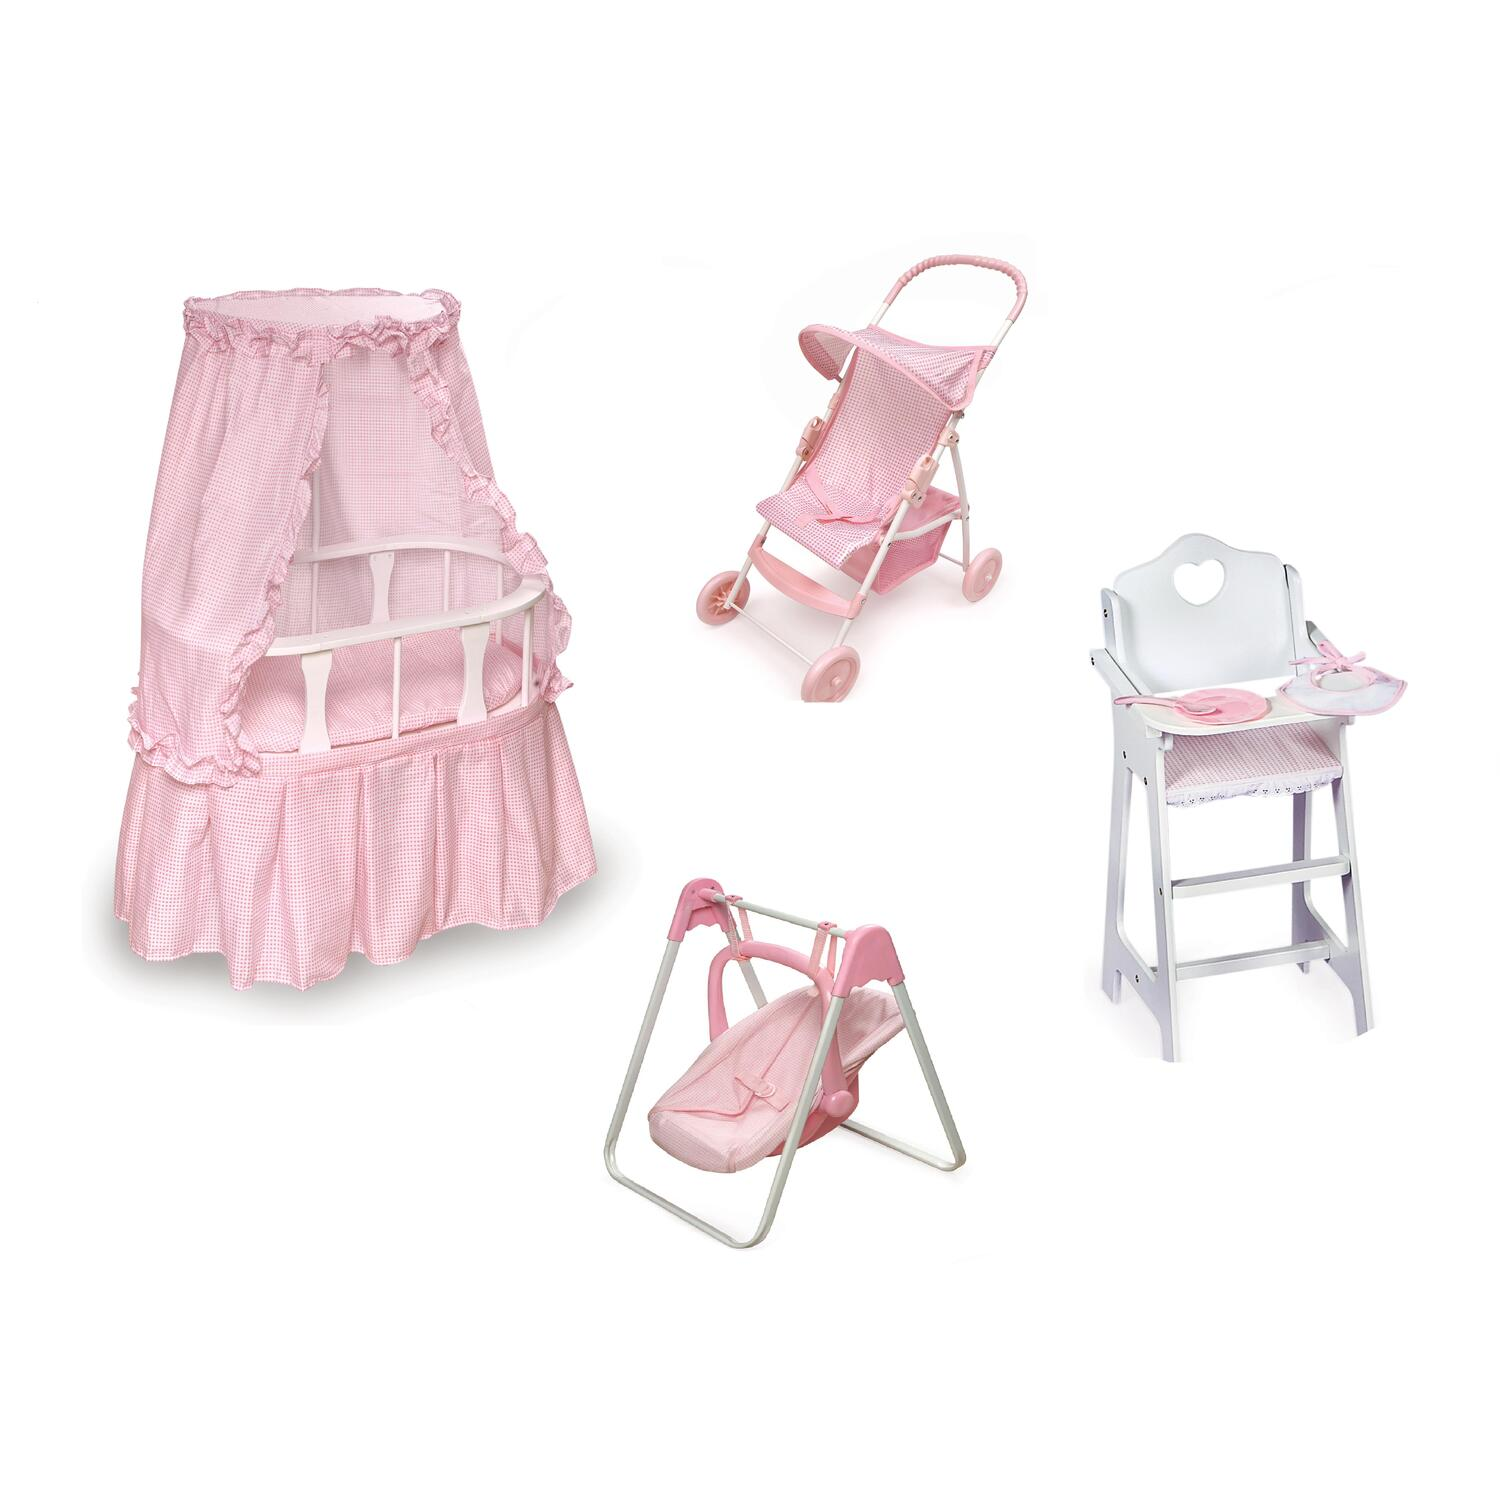 badger basket doll high chair lycra covers for hire oval bassinet furniture set by oj